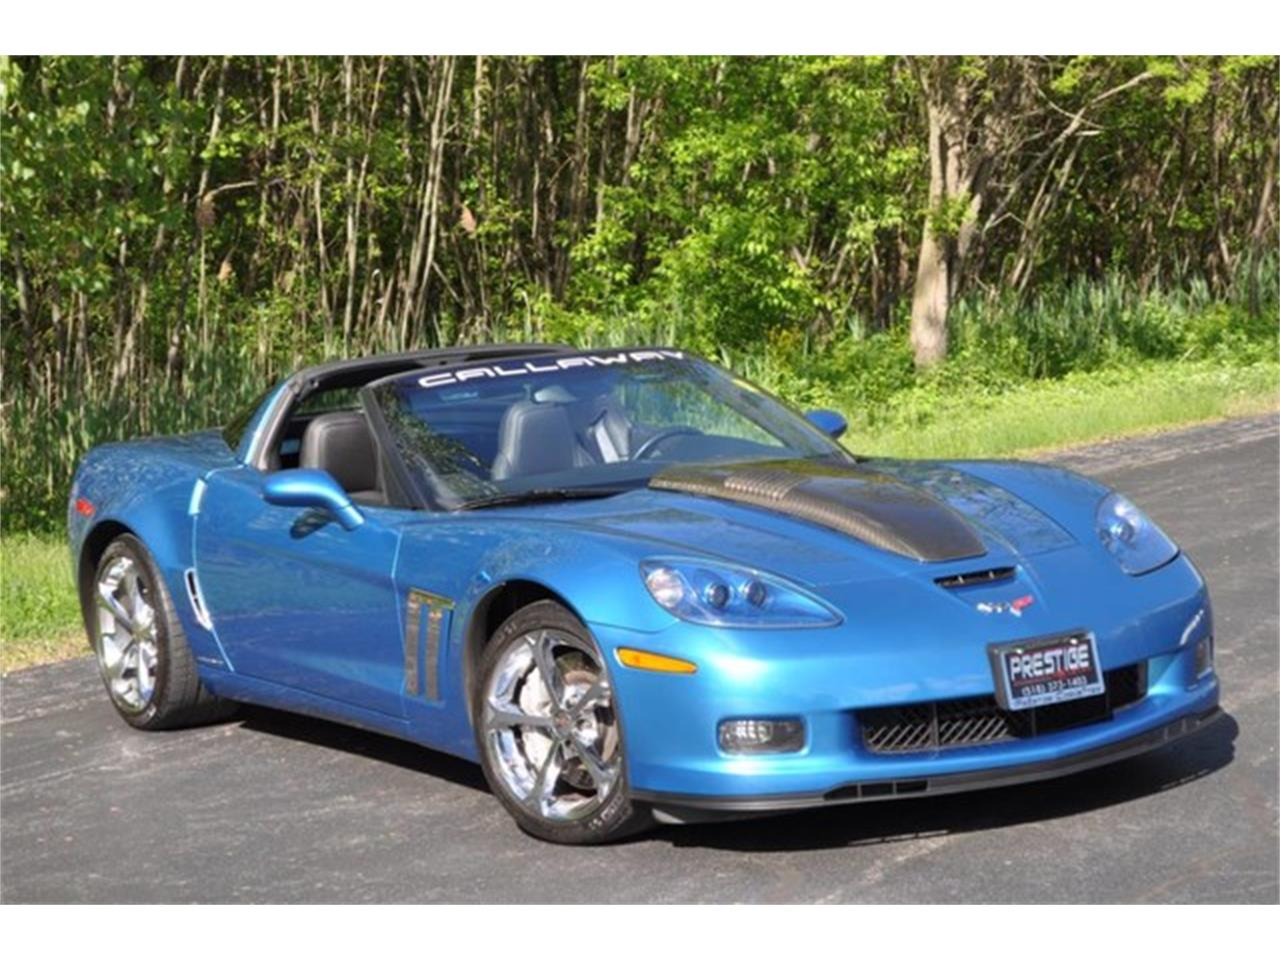 Large Picture of 2011 Chevrolet Corvette located in New York - $49,999.00 - Q58H